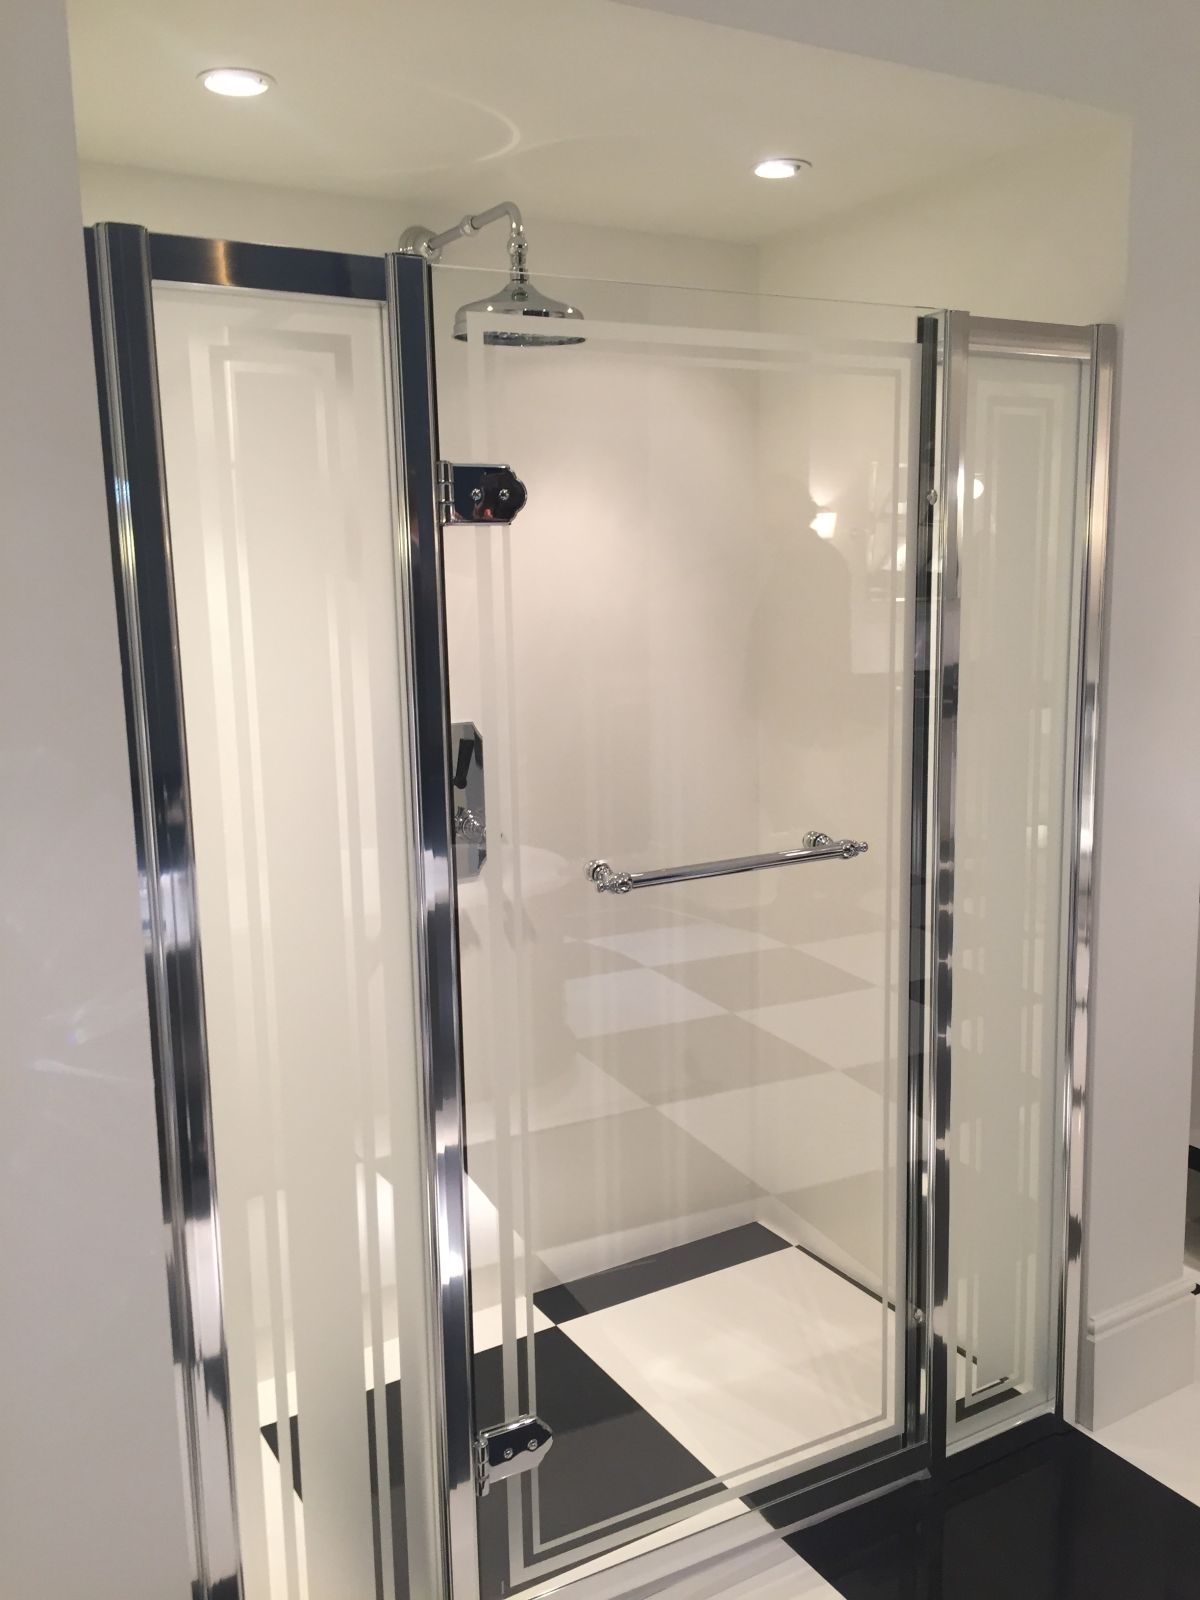 Walk-In Showers: Great Design Cleans Up Nice